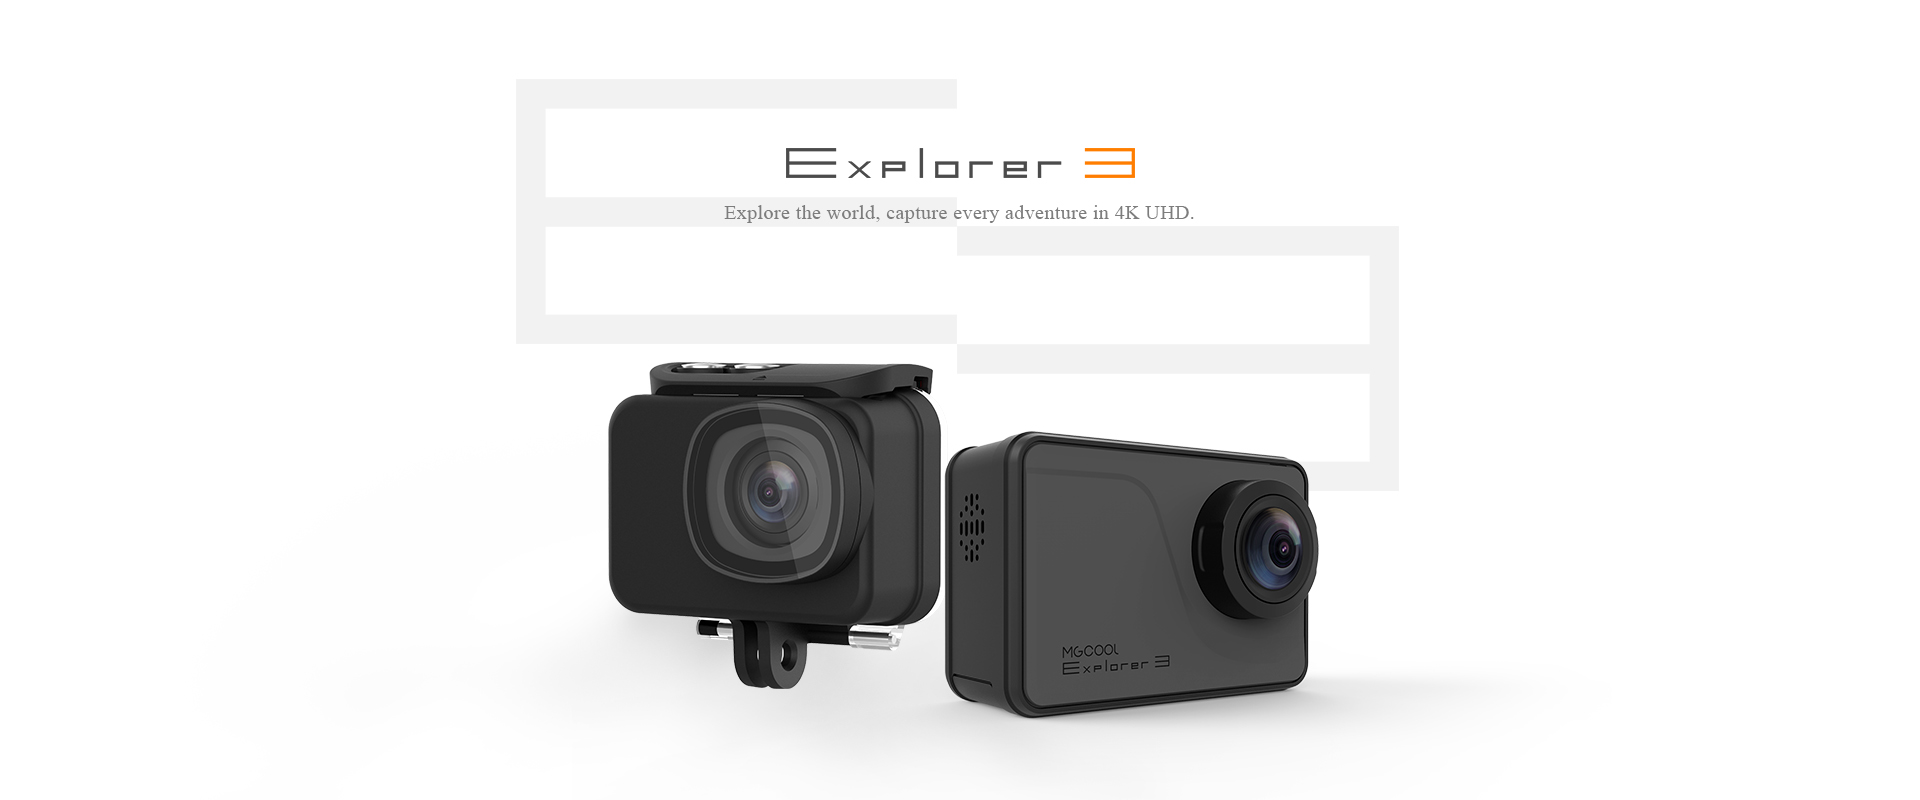 Blognews24.com|MGCOOL Explorer native 4k action camera